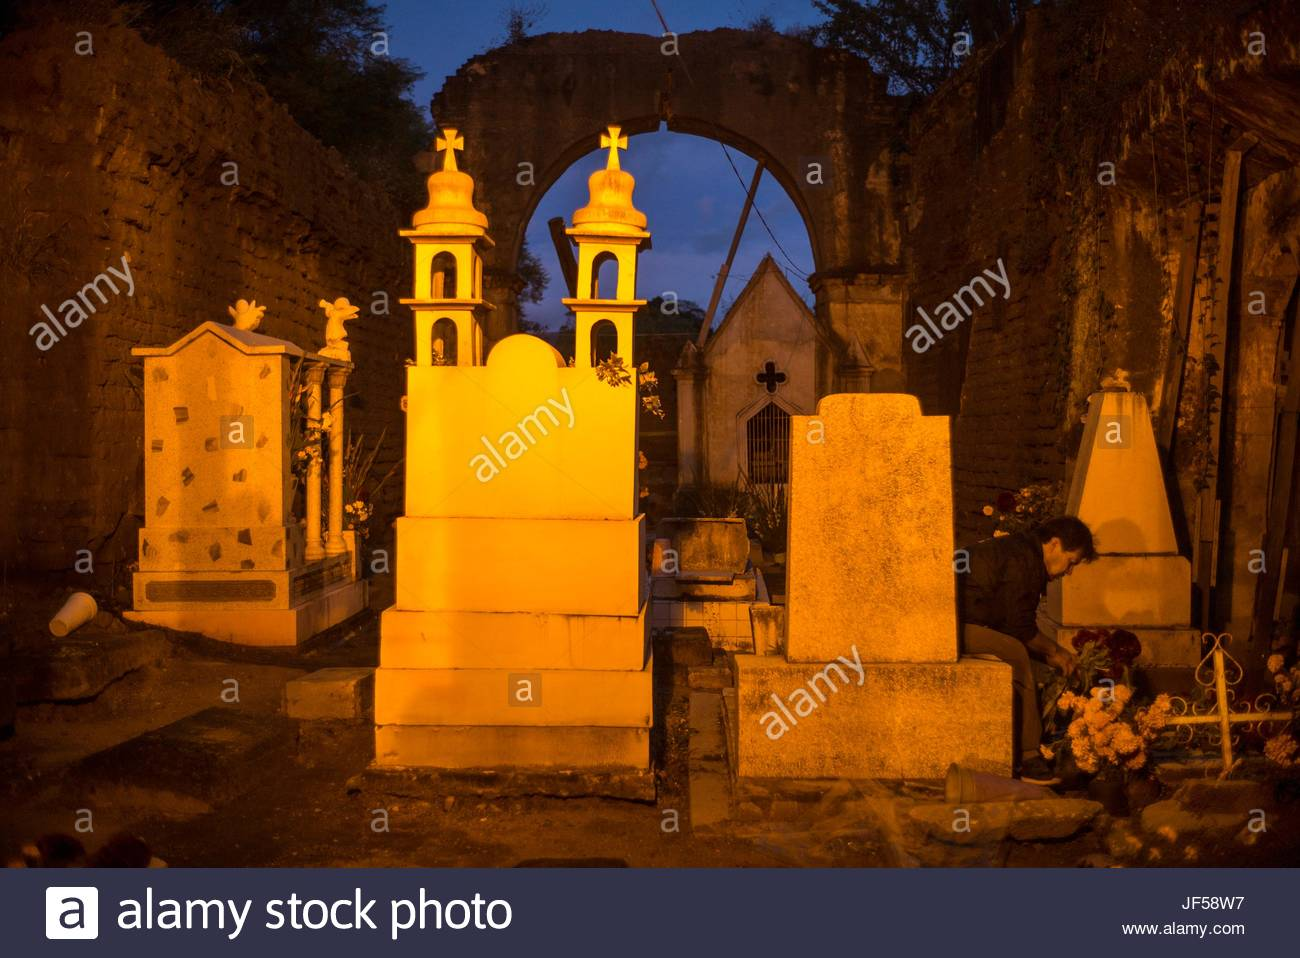 Tombs in a cemetery during the Day of the Dead celebrations. - Stock Image